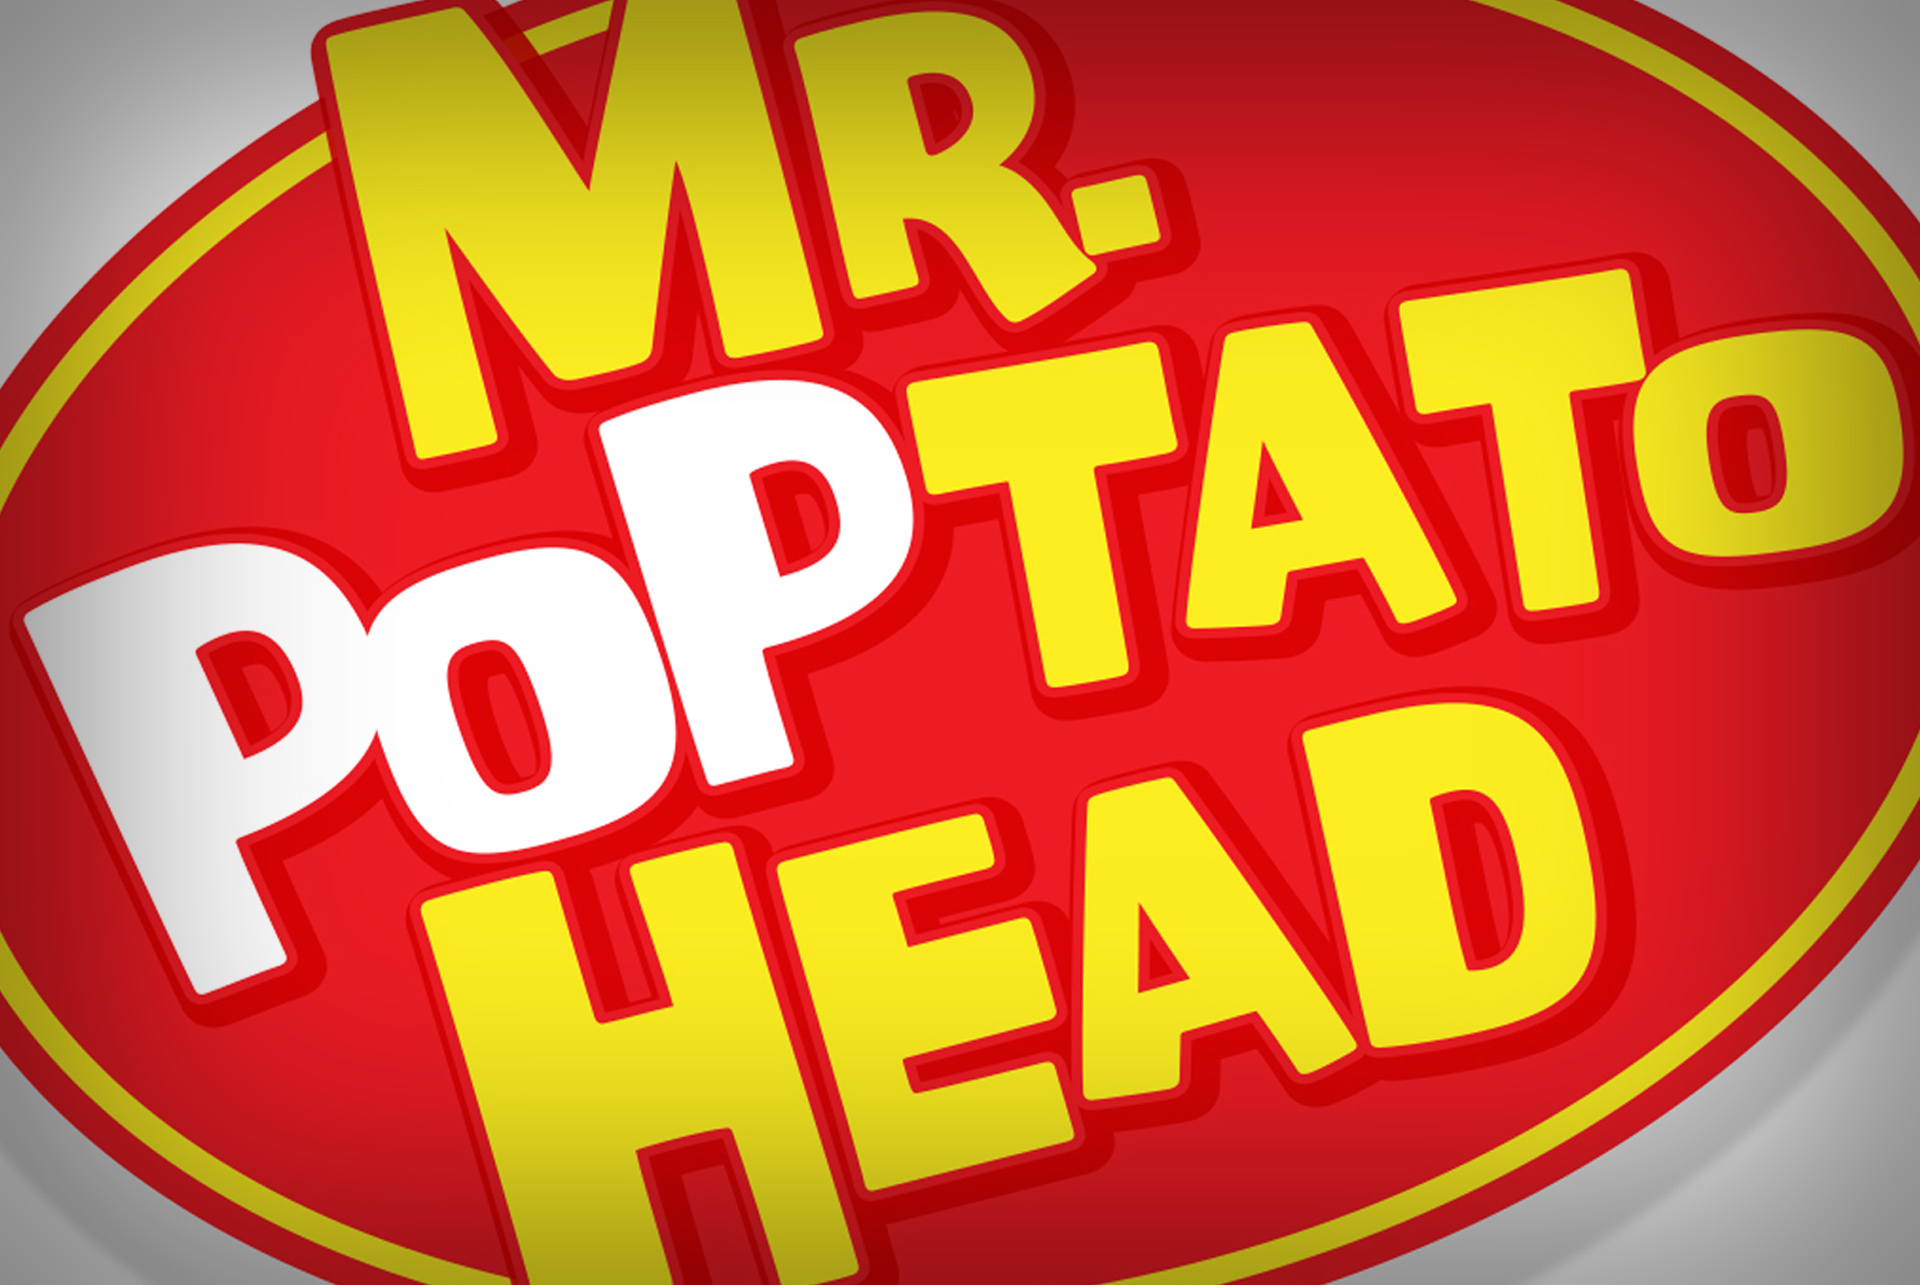 Mr. Poptato Head